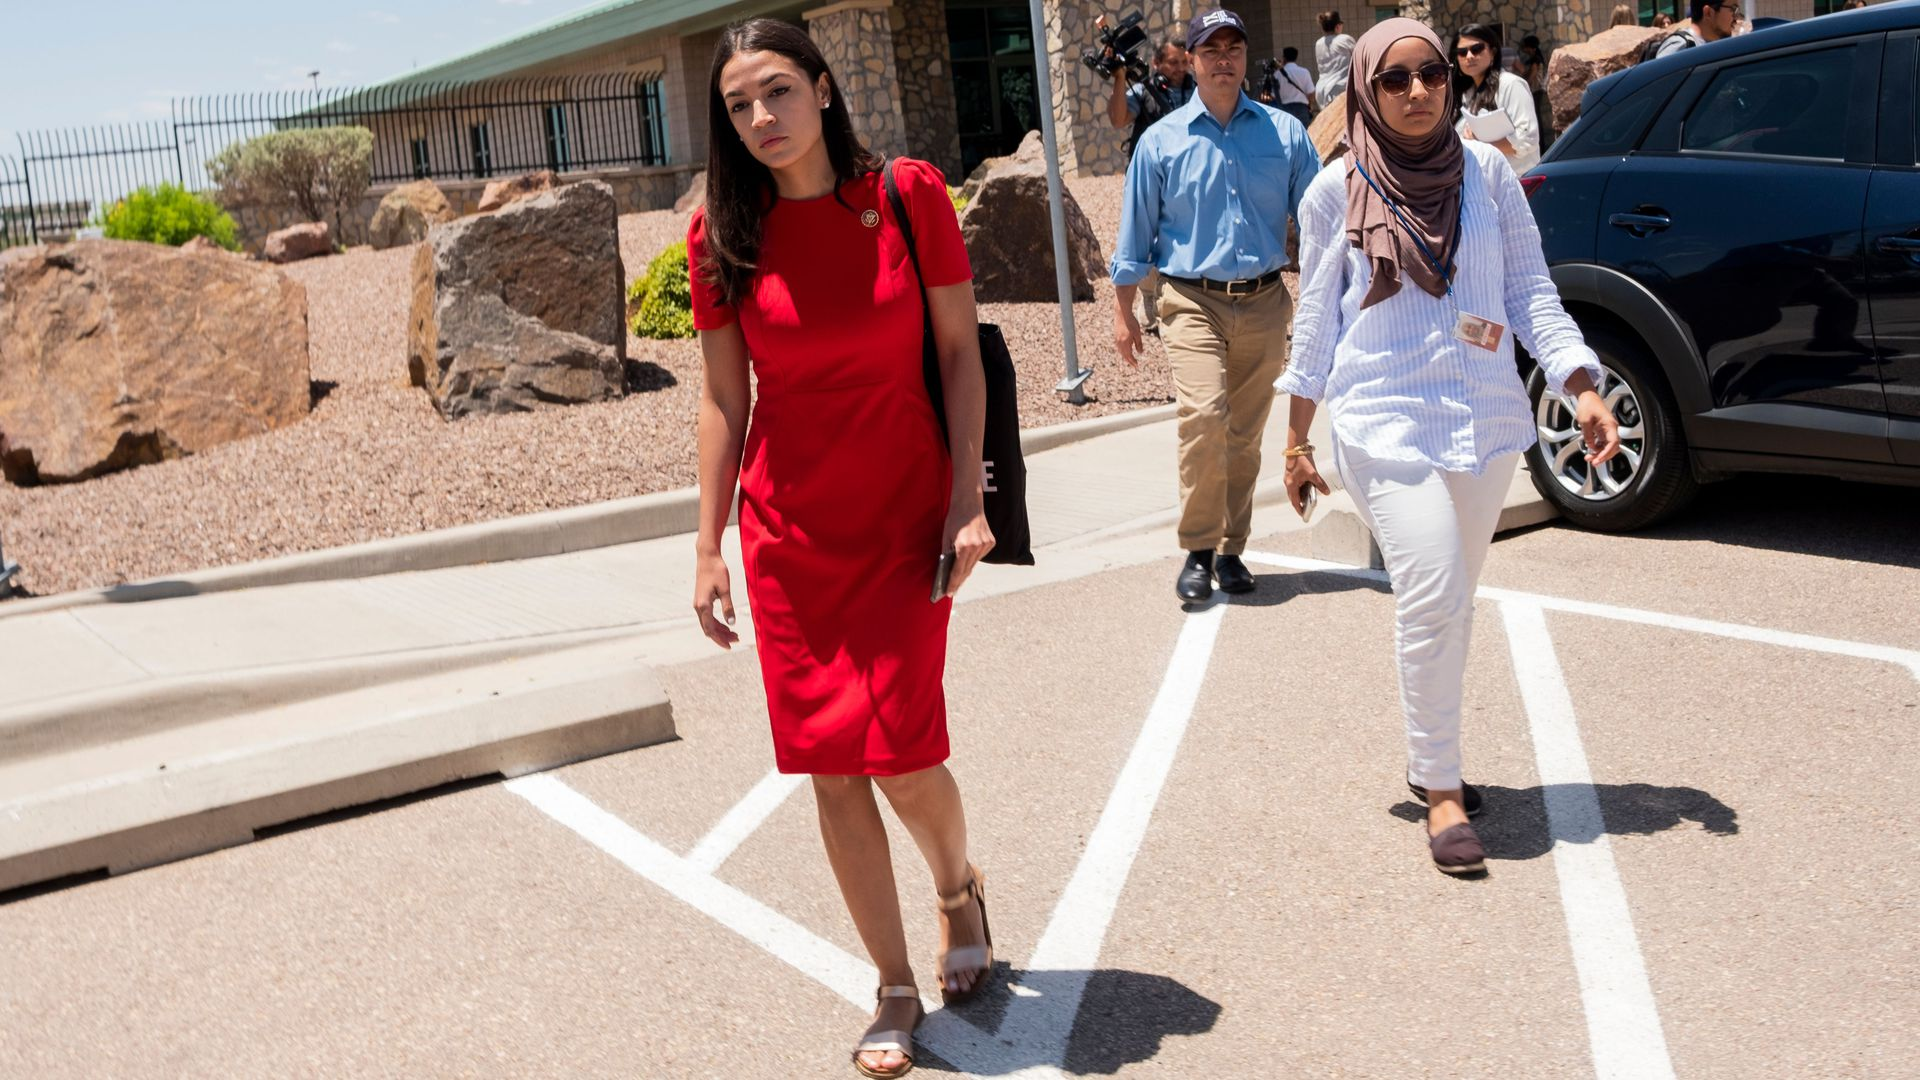 US Representative Alexandria Ocasio-Cortez (D-NY) attends with 14 members of the Congressional Hispanic Caucus a tour to Border Patrol facilities and migrant detention centers on July 1.